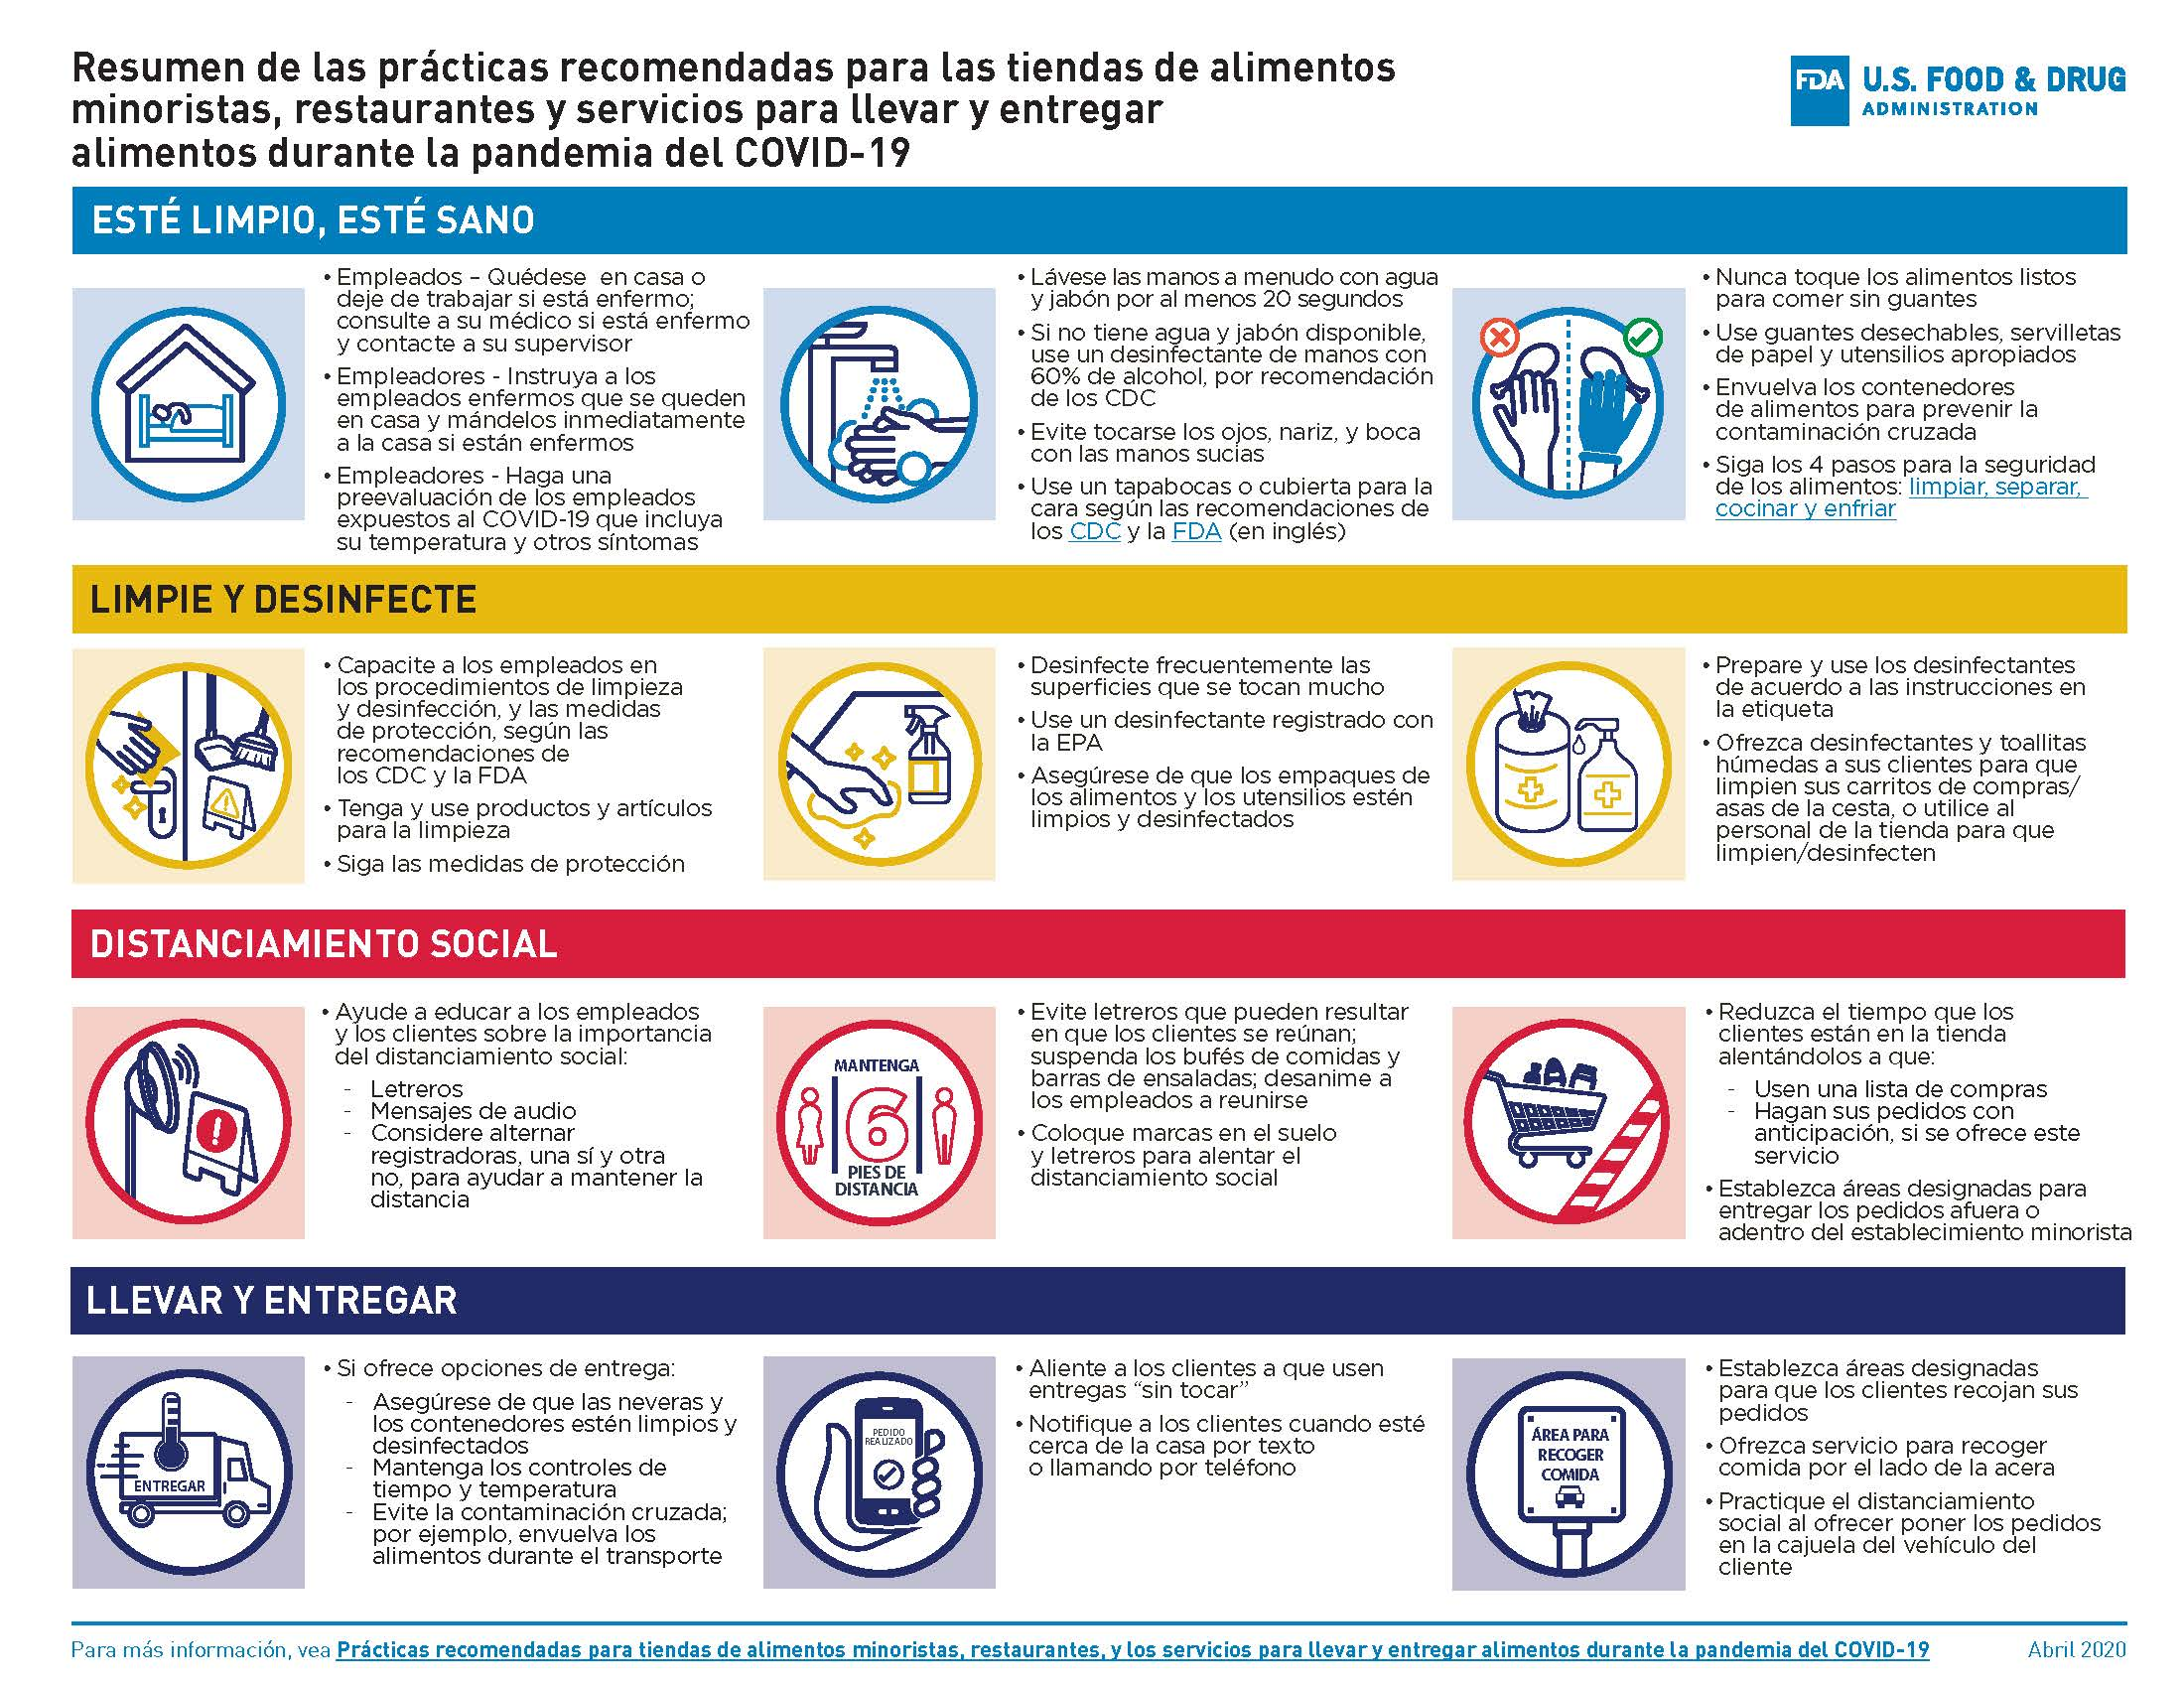 2020_04_22_COVID_FoodRetail_BestPractices_Infographic_SPANISH